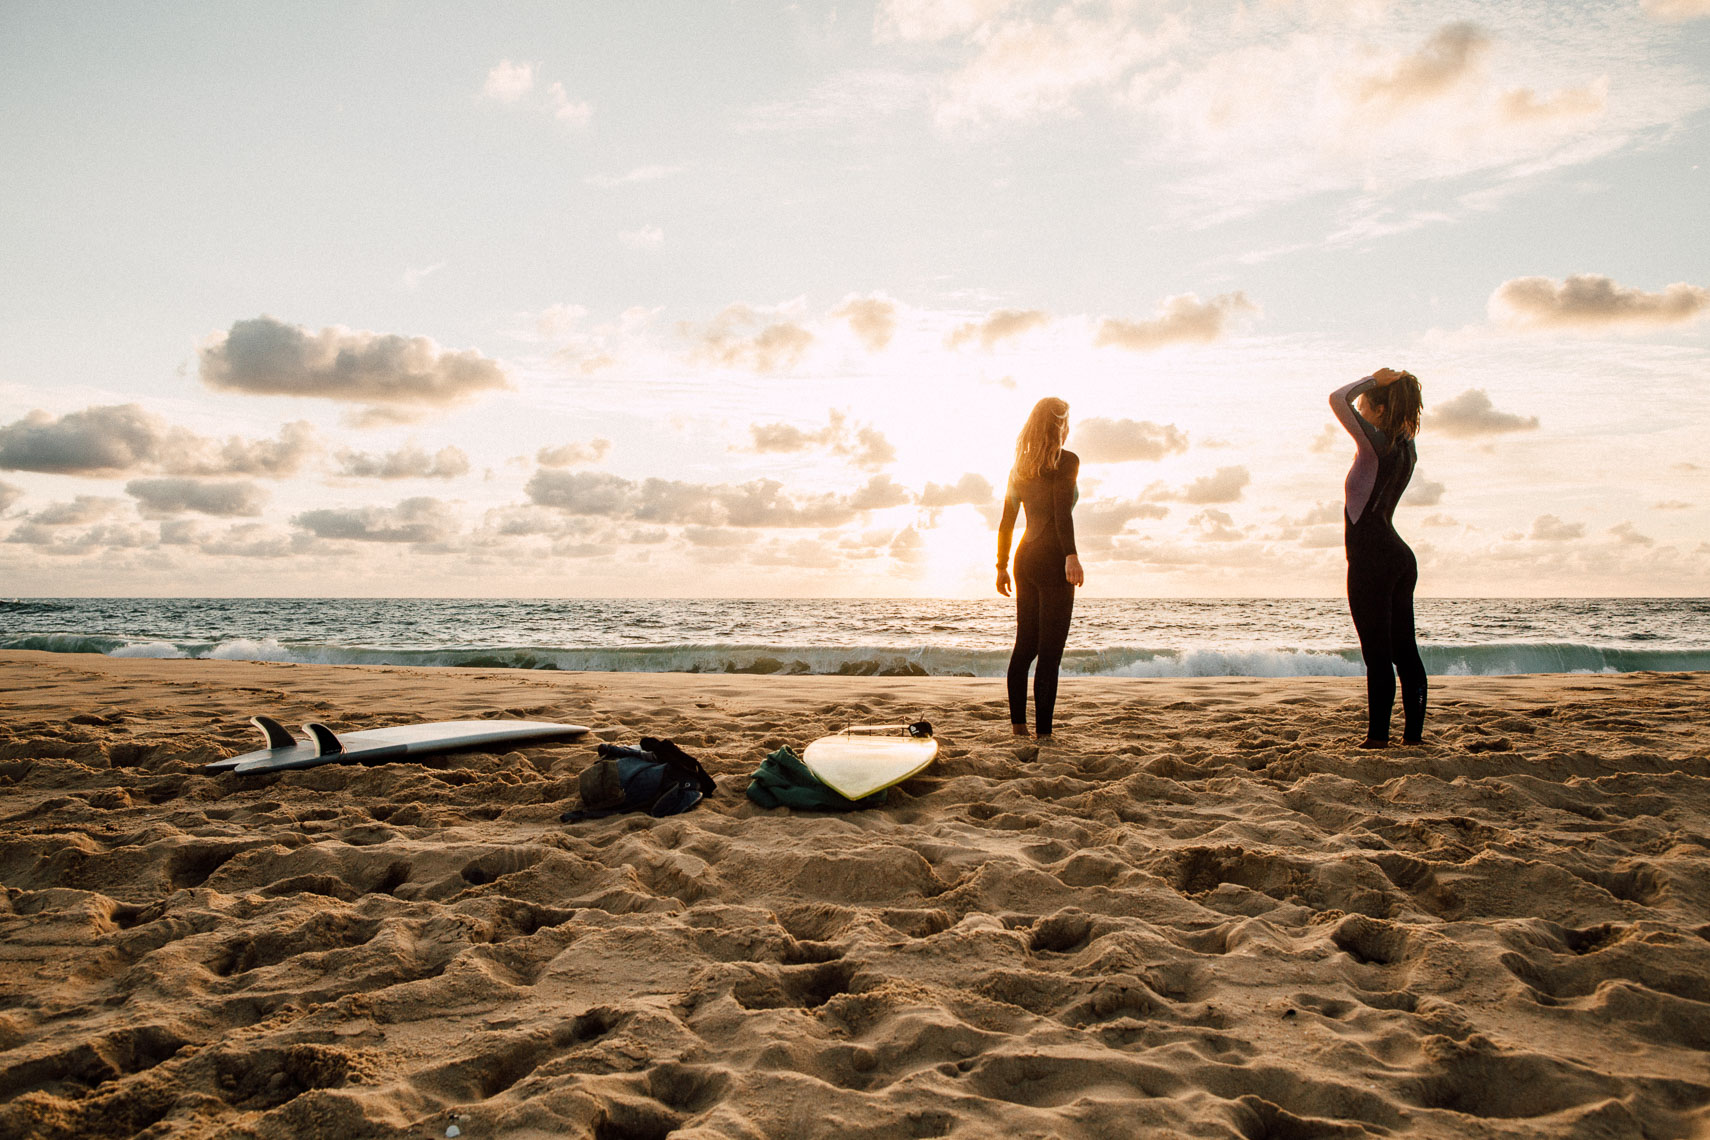 SURFER GIRLS - COUNTER PRODUCTION - NICOLAS HUDAK